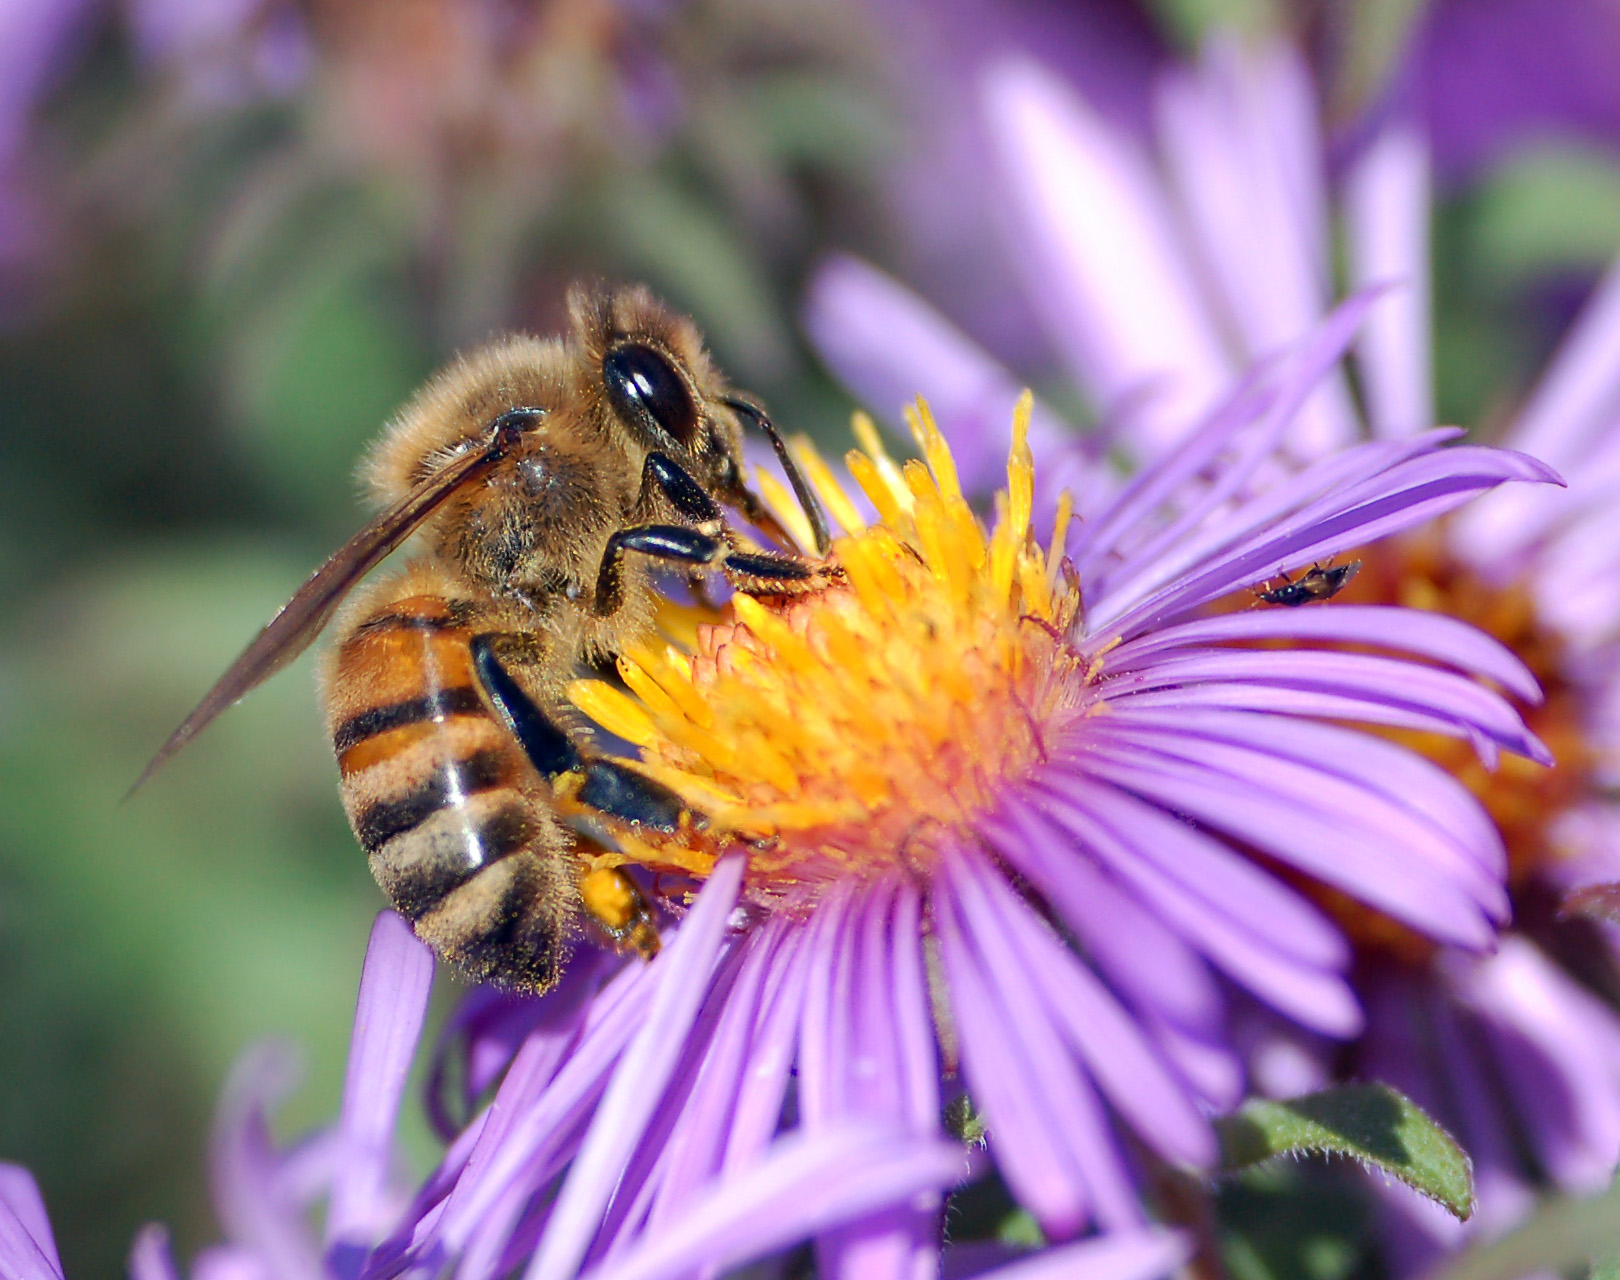 File:European honey bee extracts nectar.jpg - Wikipedia, the free ...